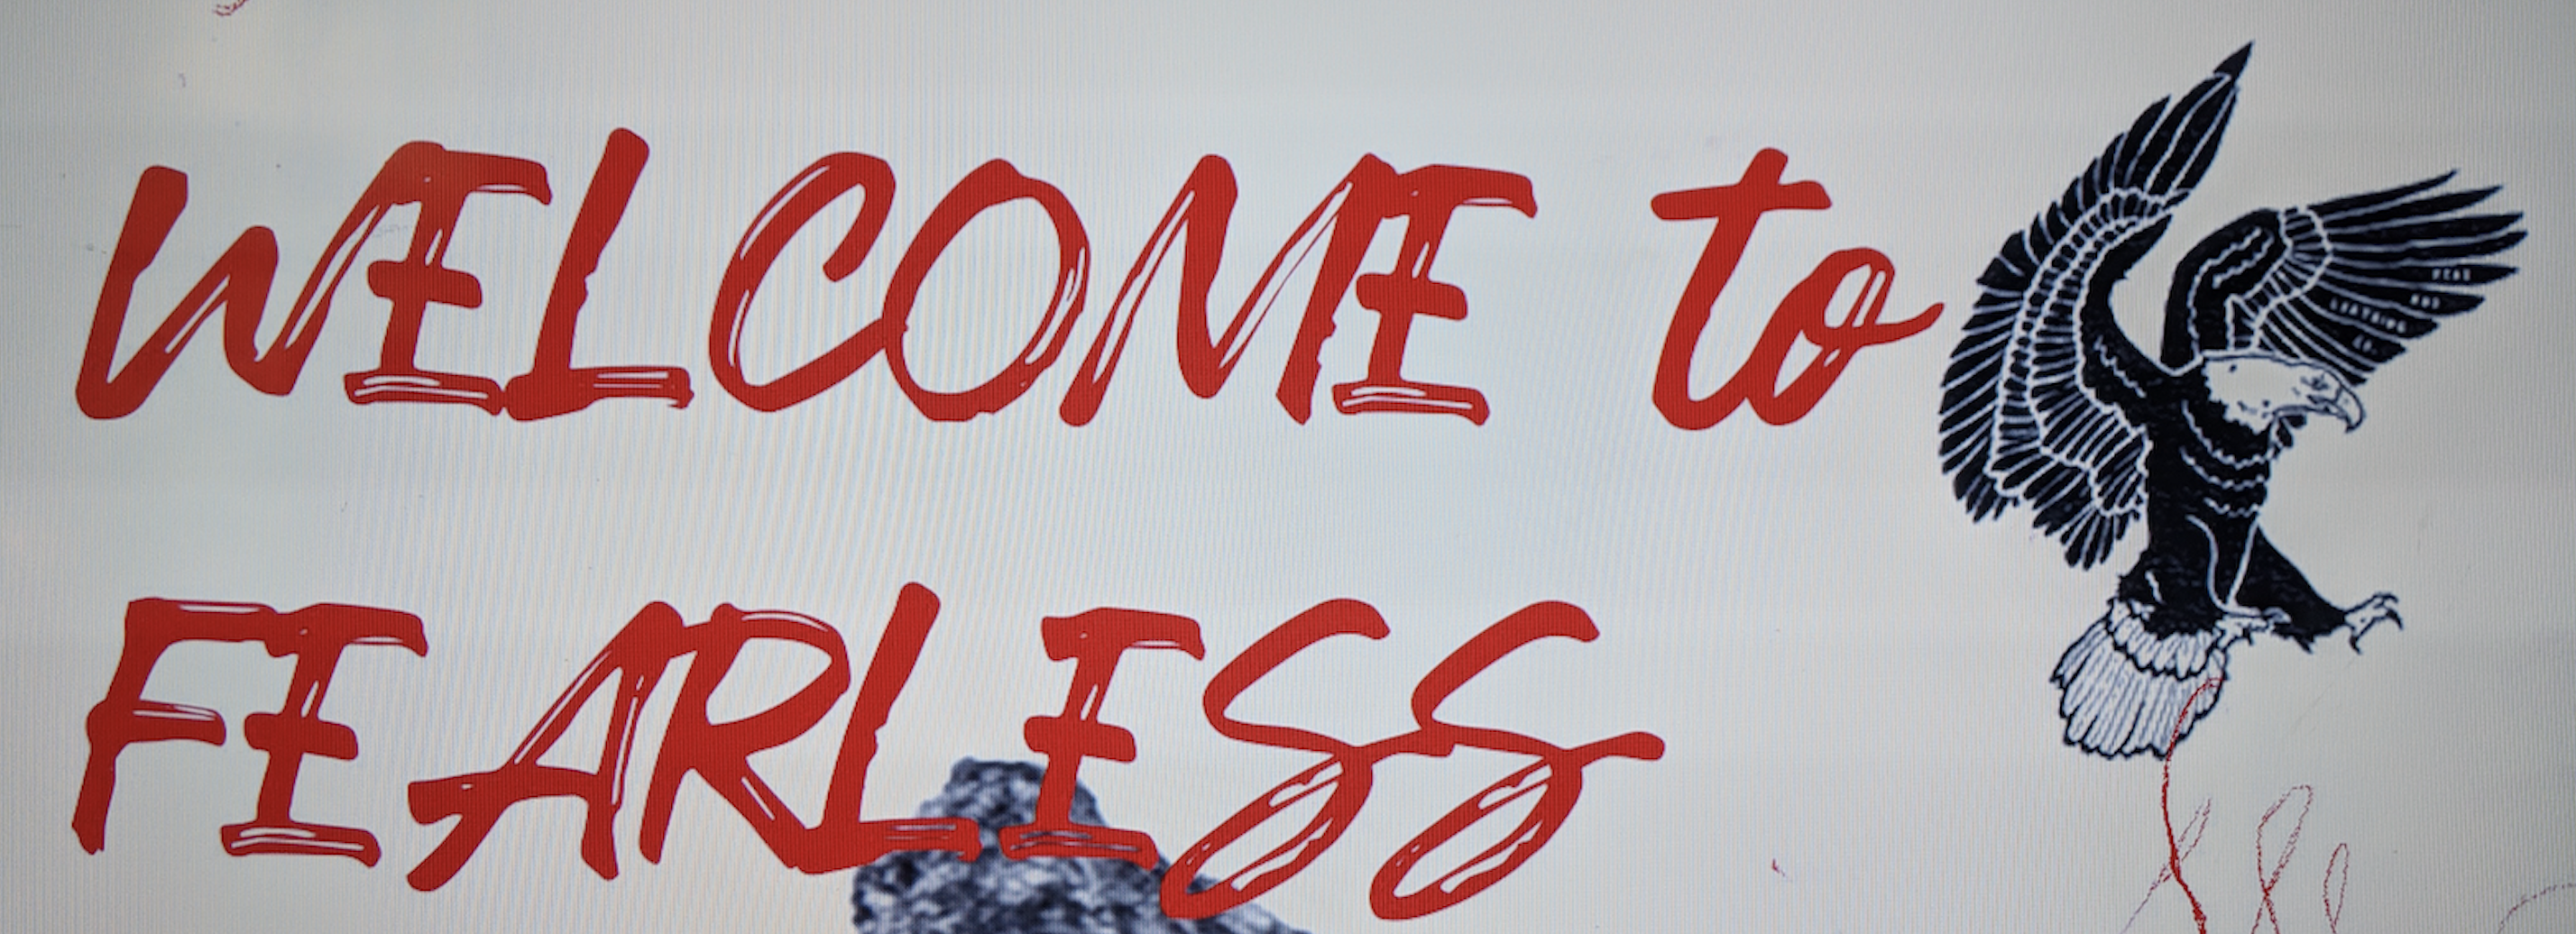 banner_welcome-to-fearless-compact